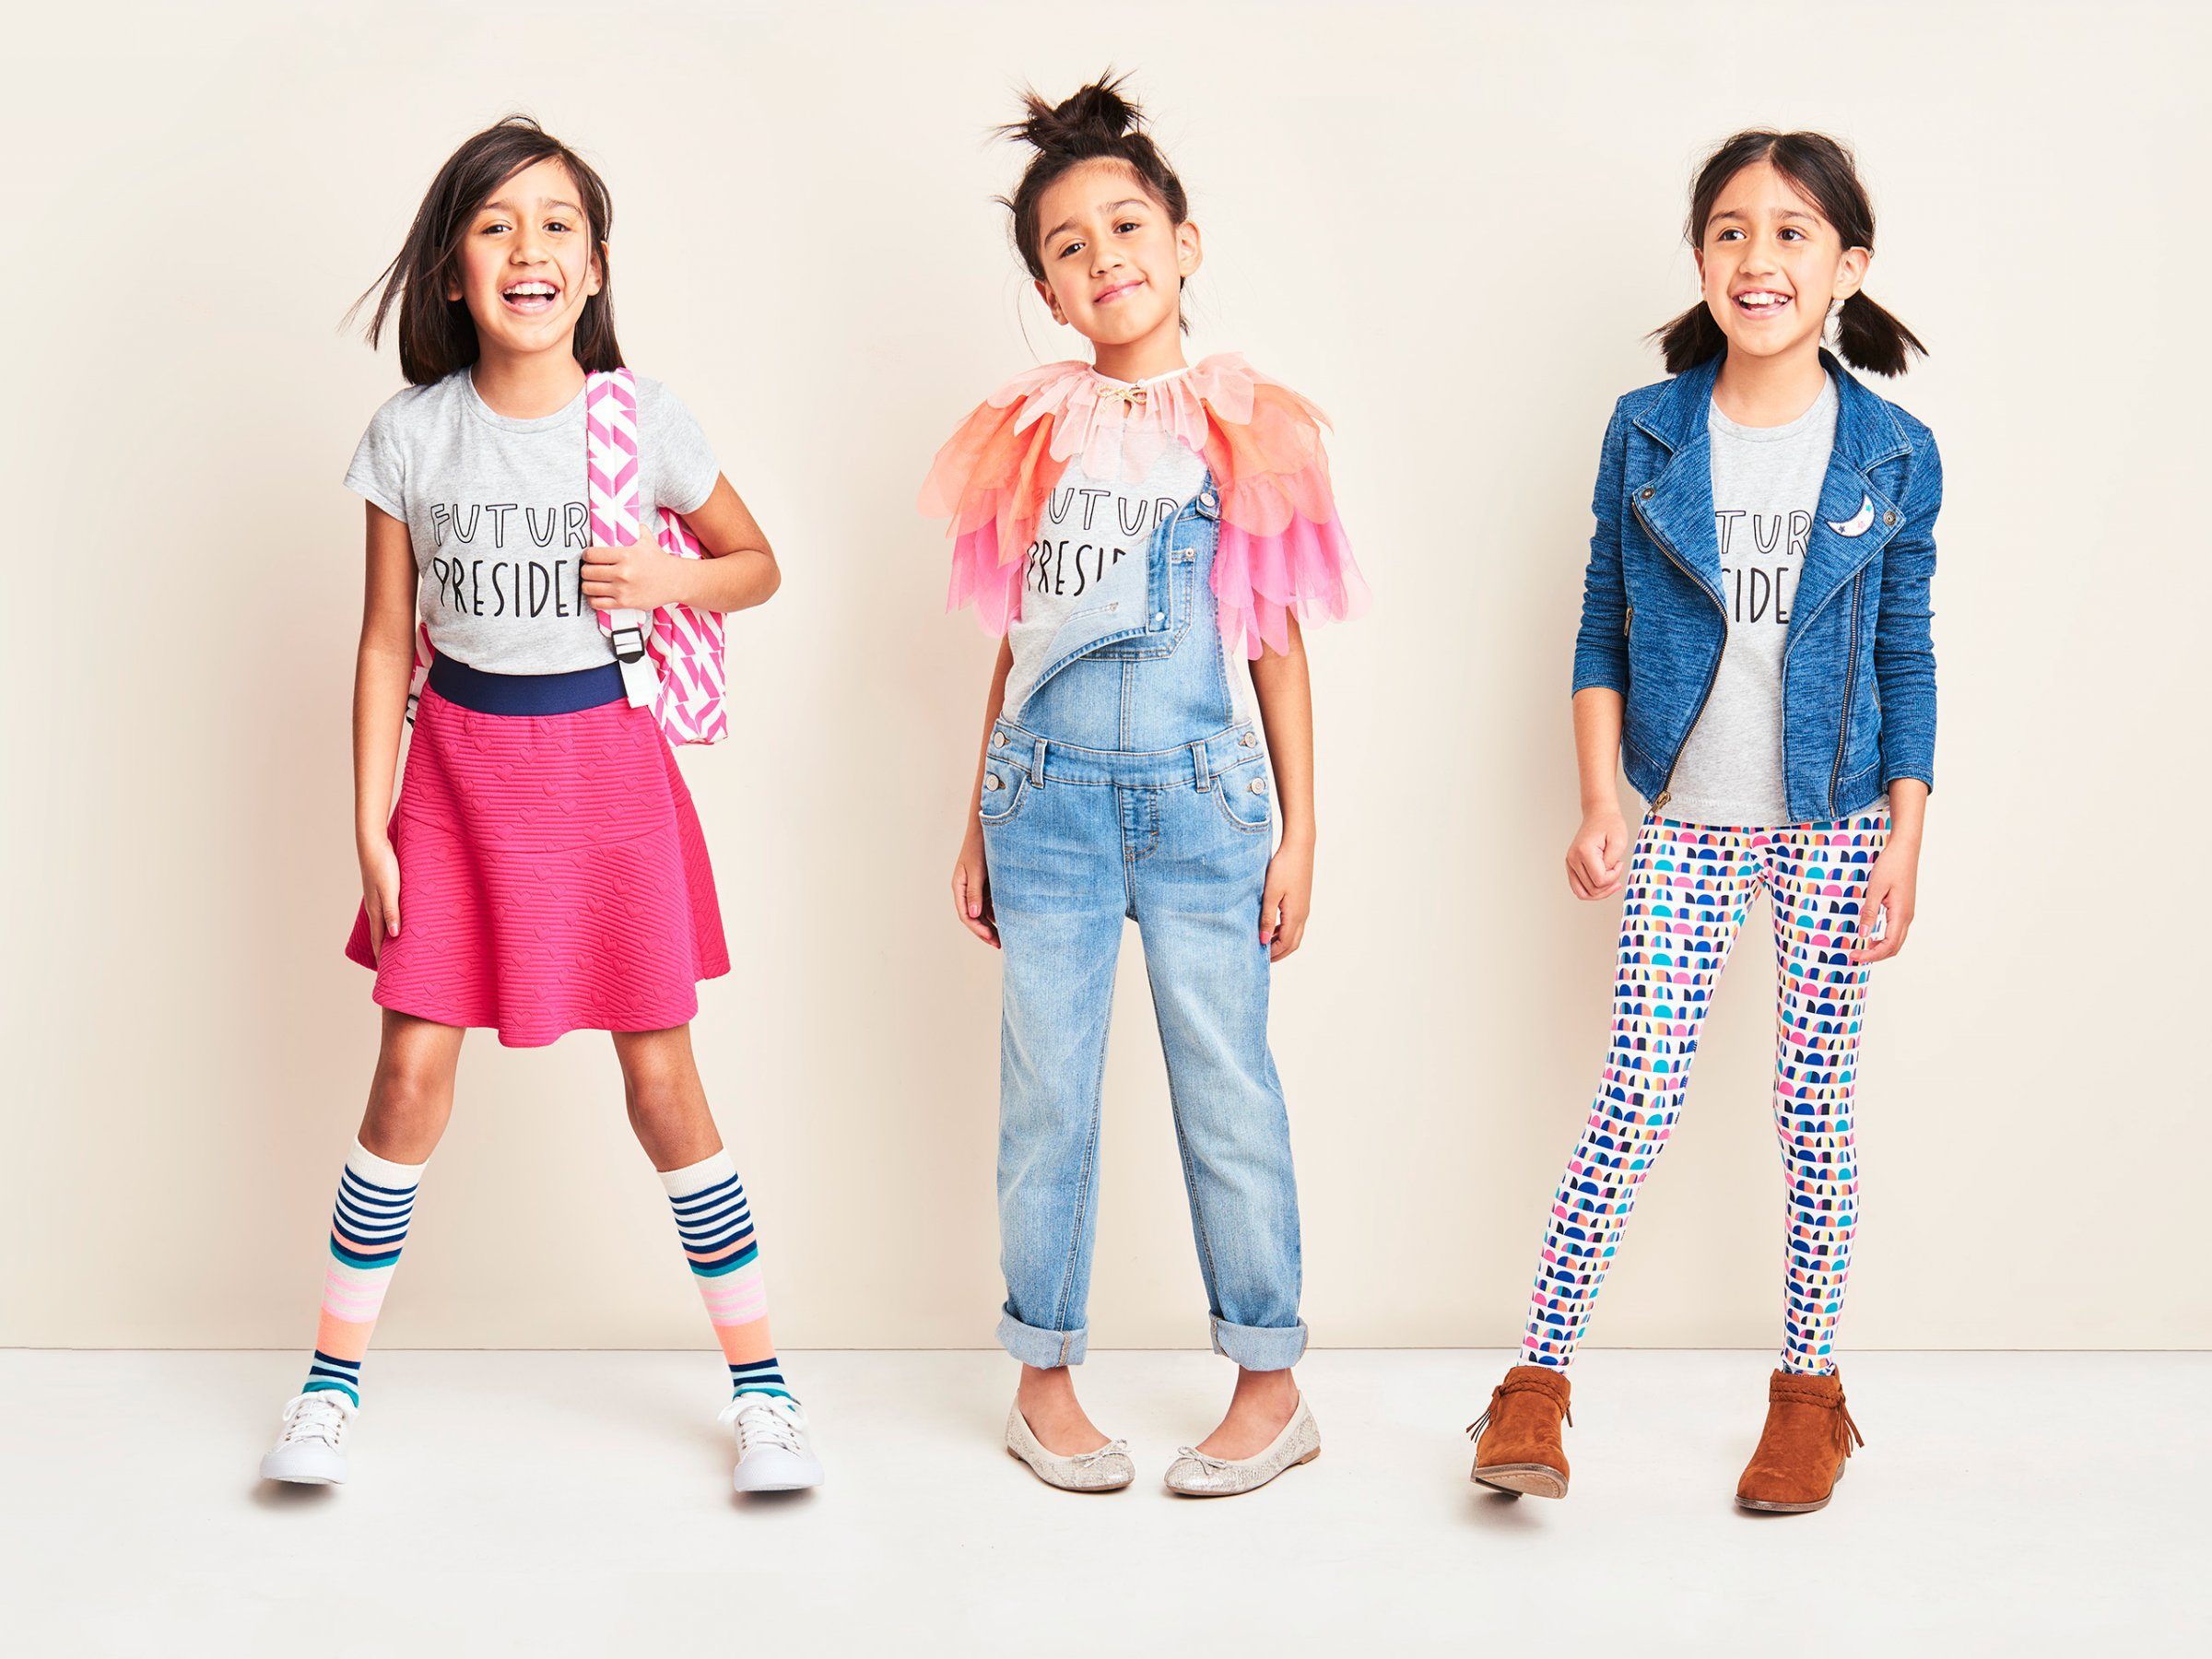 Today in awesome: Target debuts new kids' clothing line with gender-neutral options